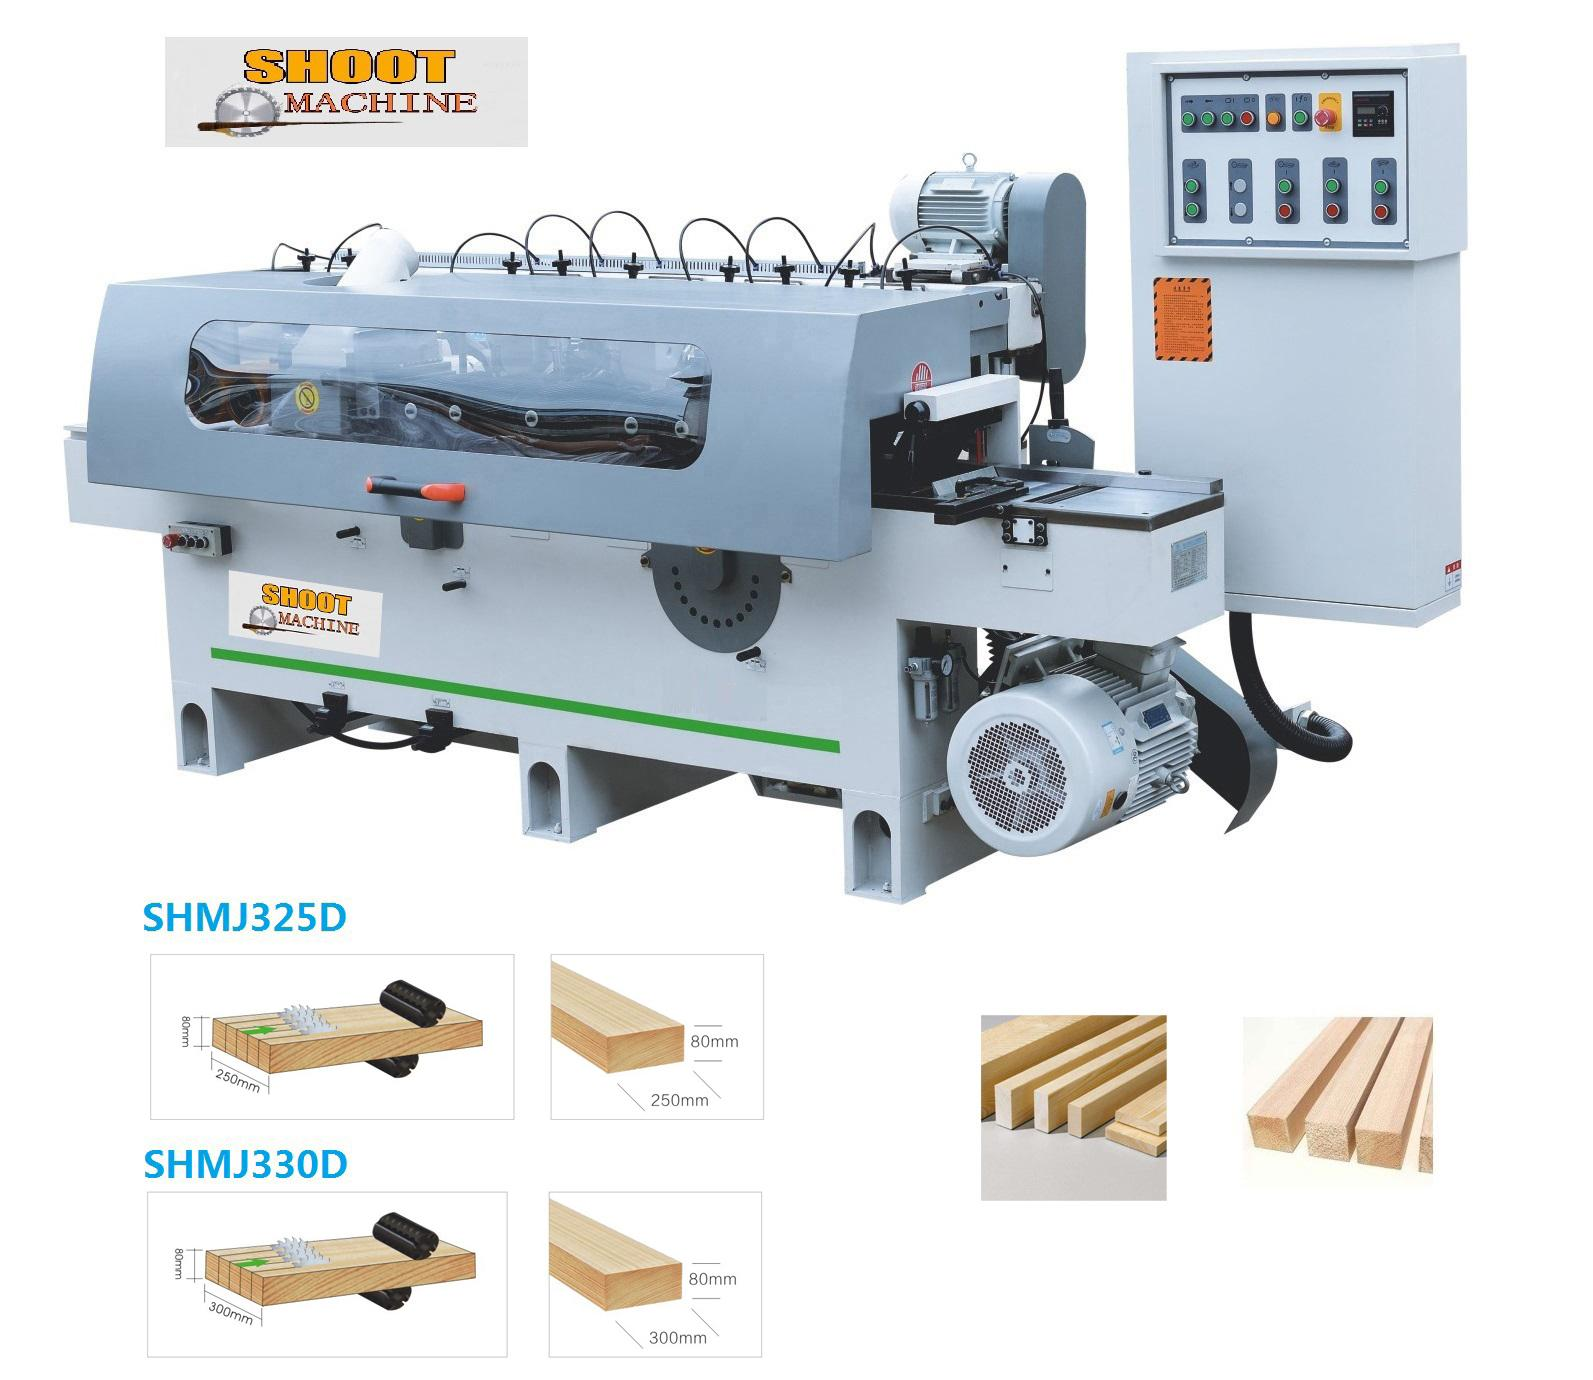 Heavy Duty Woodworking auto Rip saw and Planer machine,SHMJ330D